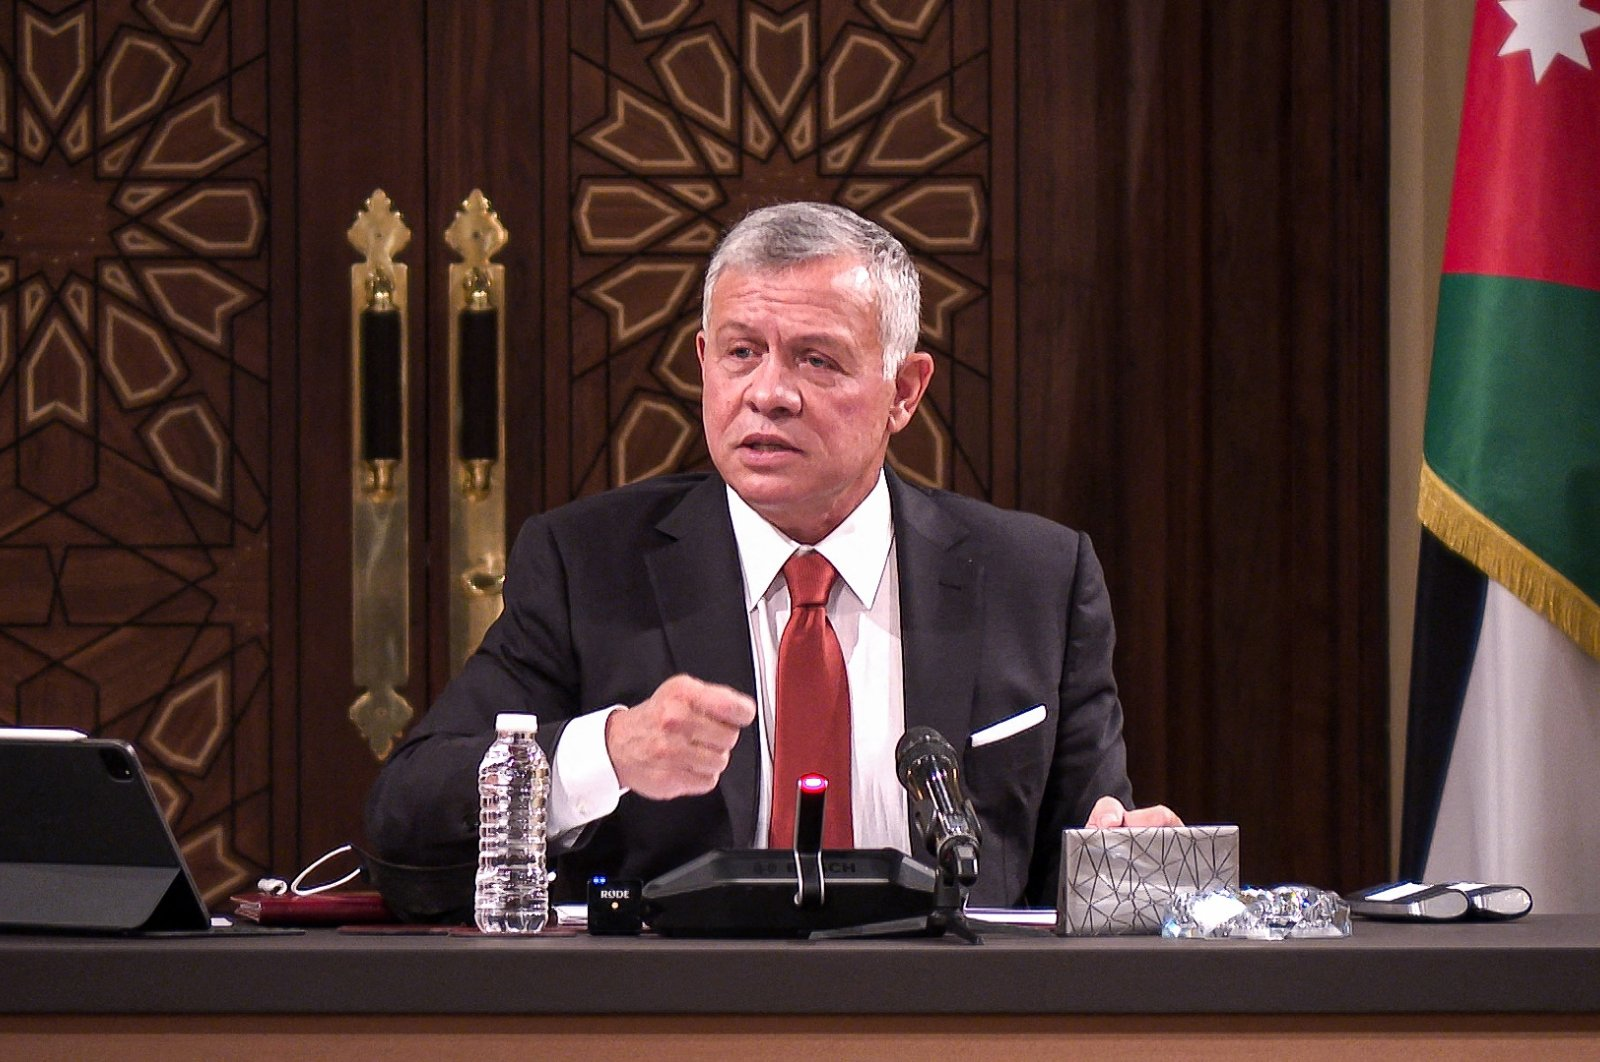 Jordanian King Abdullah II speaks during a meeting at the House of Representatives in the capital Amman, Jordan, March 23, 2021. (Jordanian Royal Palace via AFP)